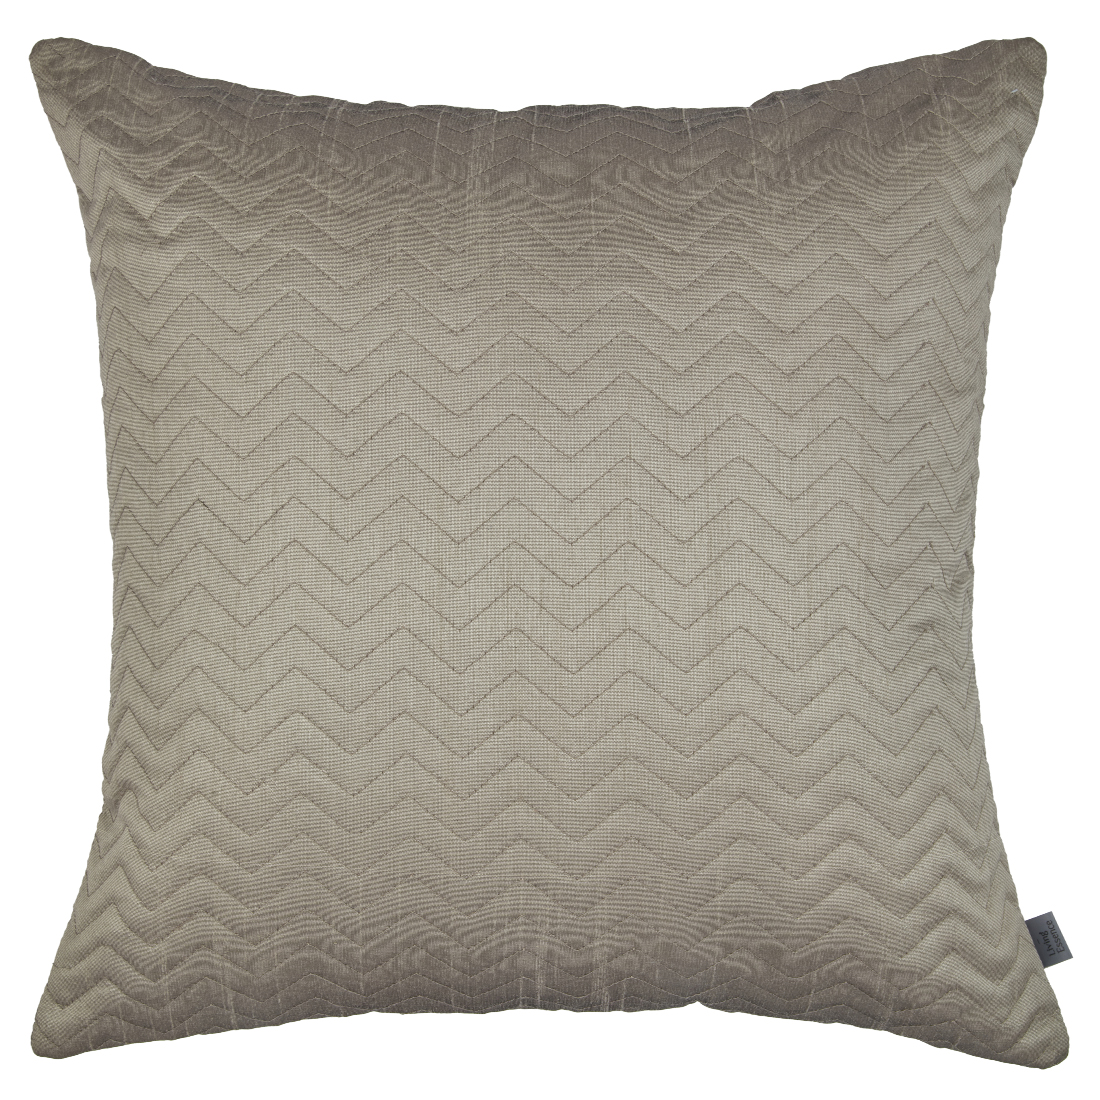 Cushion Cover Argos Grey Cushion Covers in Poly Dupion Colour by Living Essence